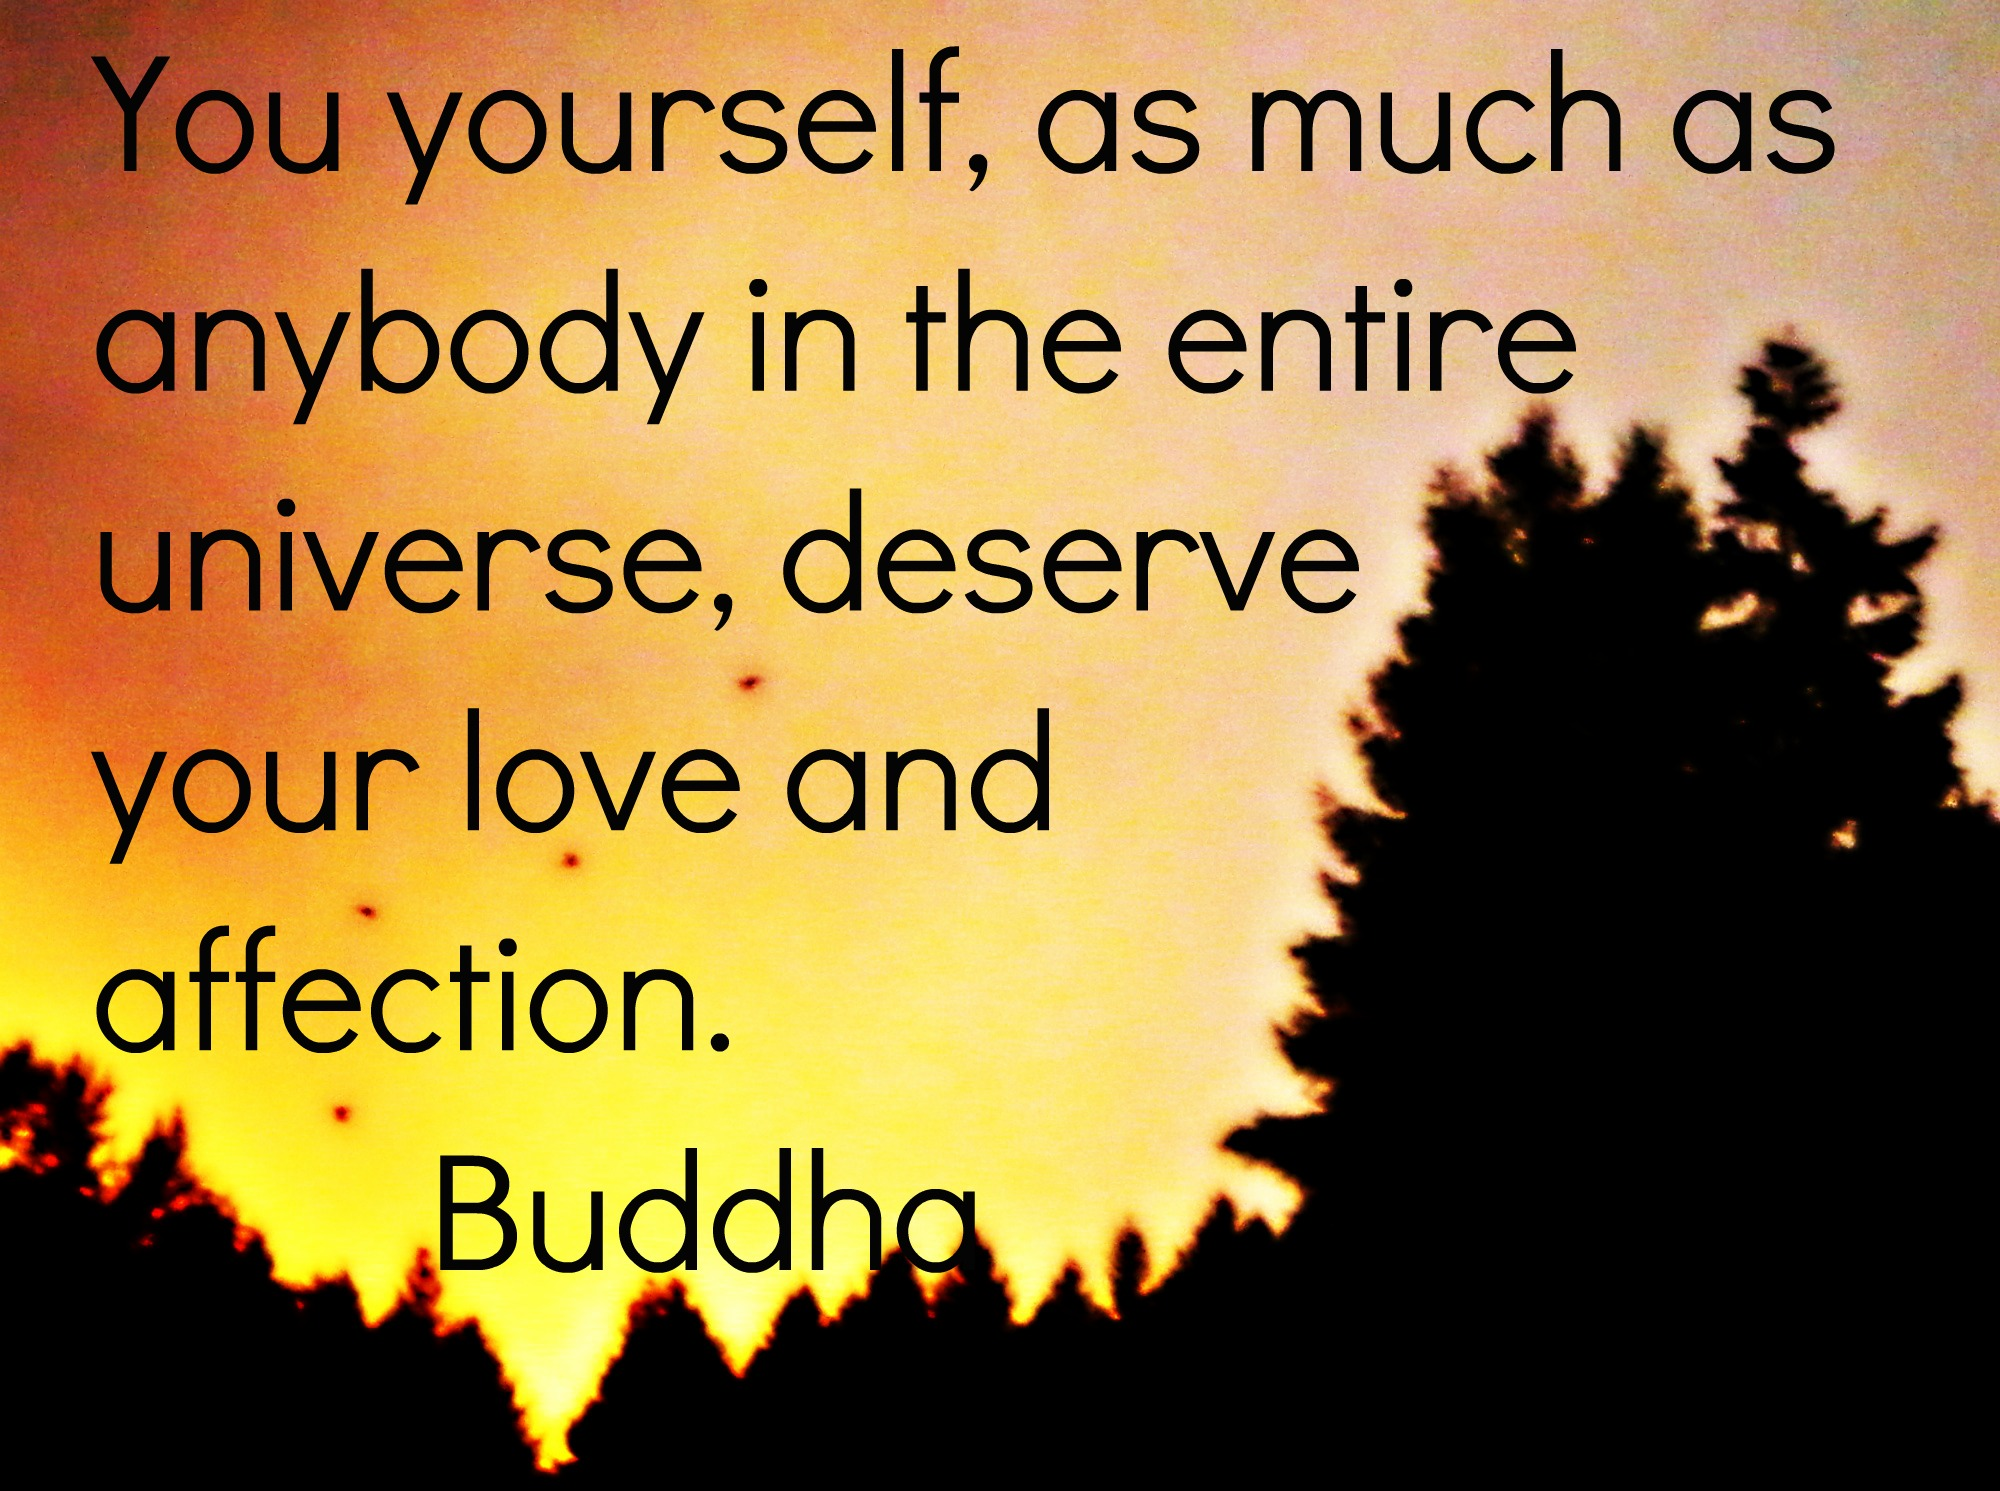 Buddha Quotes On Happiness Buddha Quotes On Love And Happiness Buddha Quotes On Love And